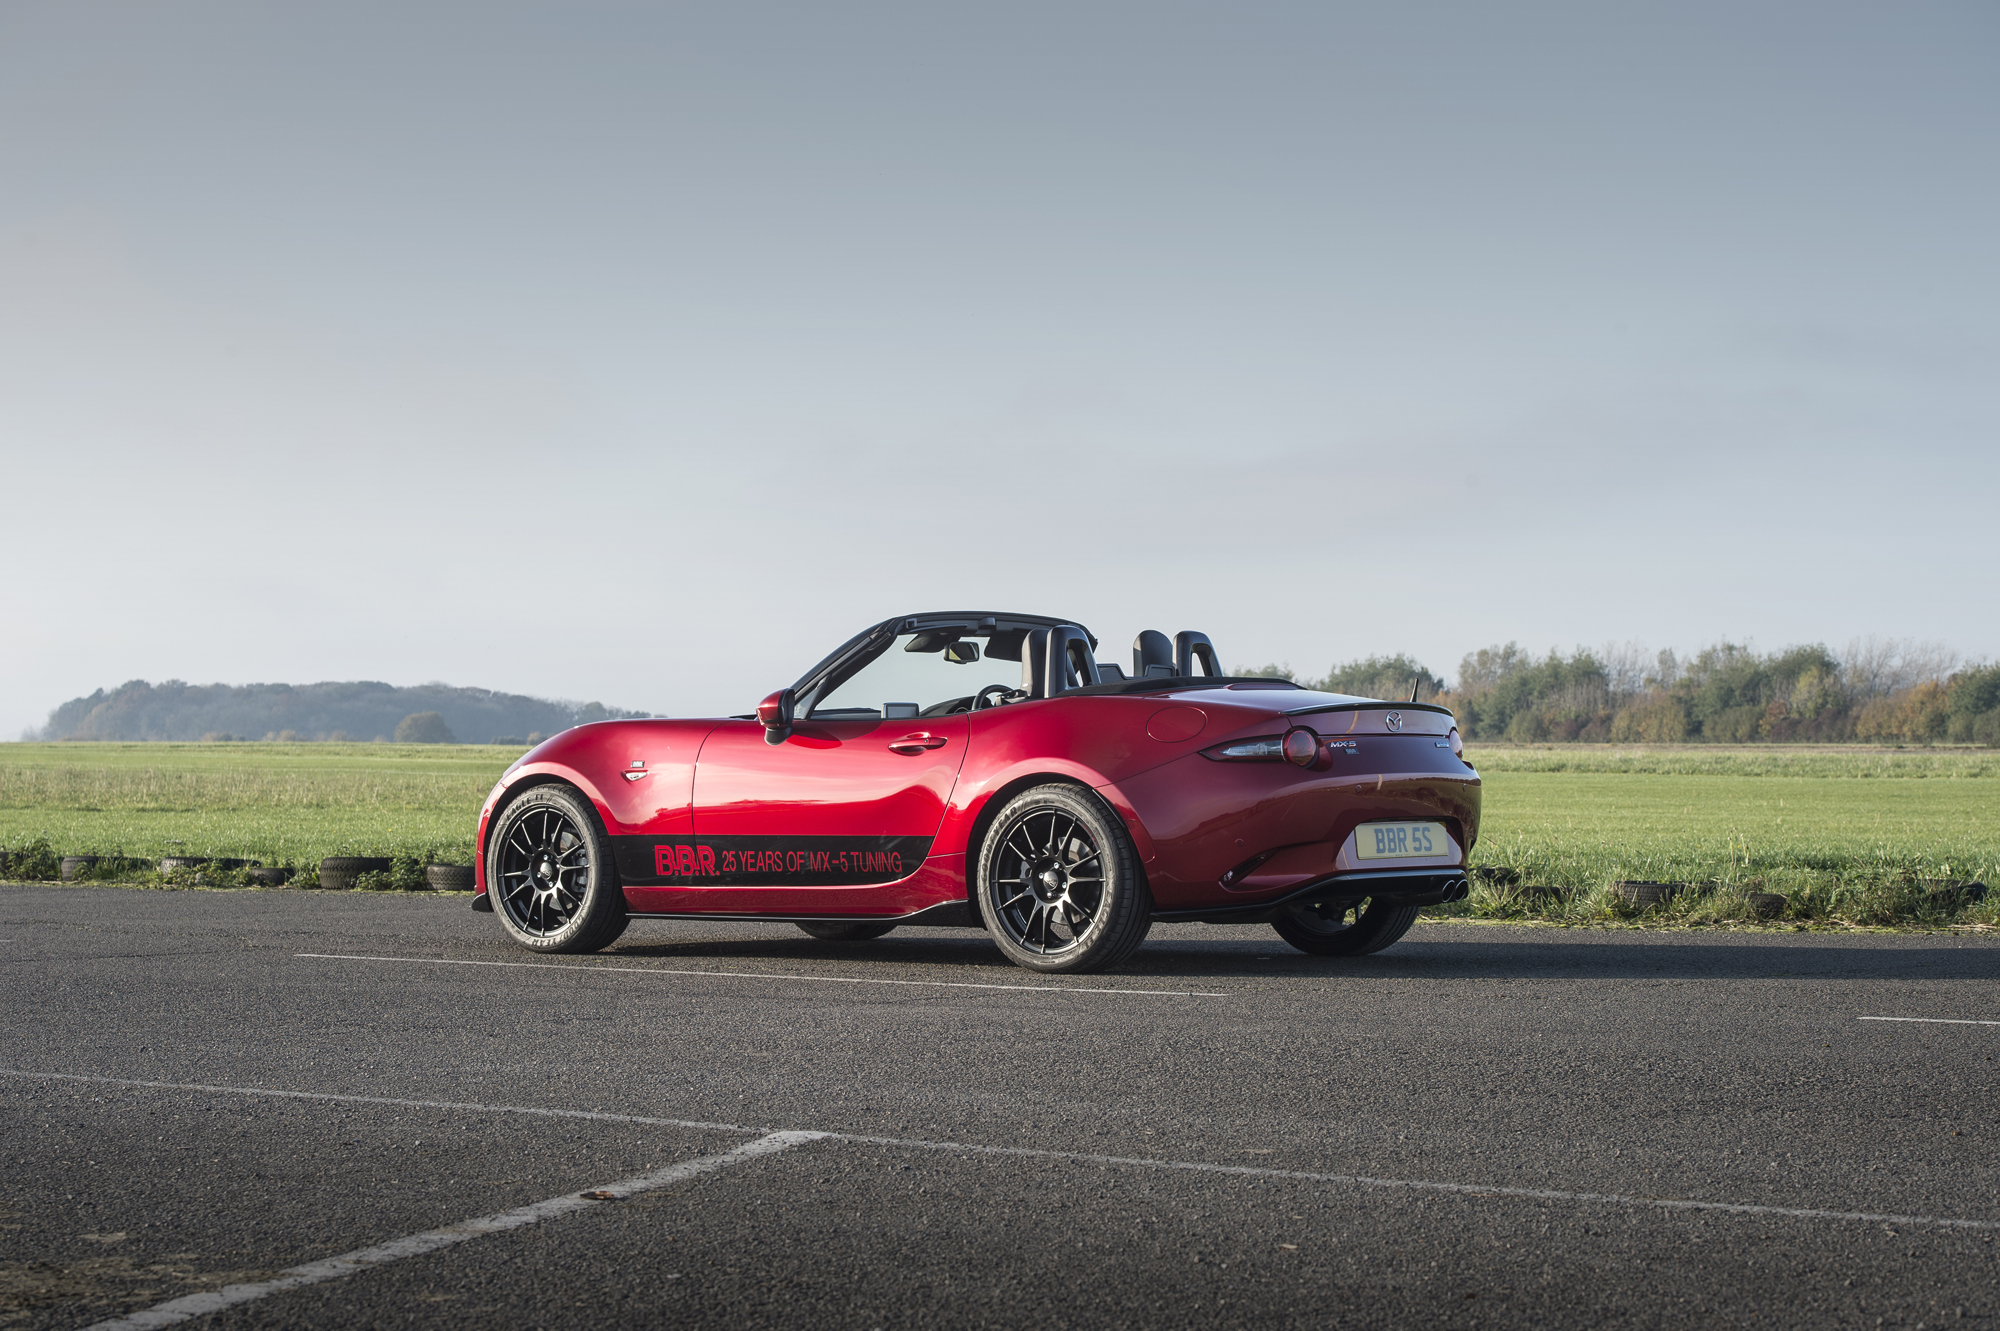 Bbr Tuning Firm Upgrades For All New Mazda Mx 5 Models Motorparks Blog